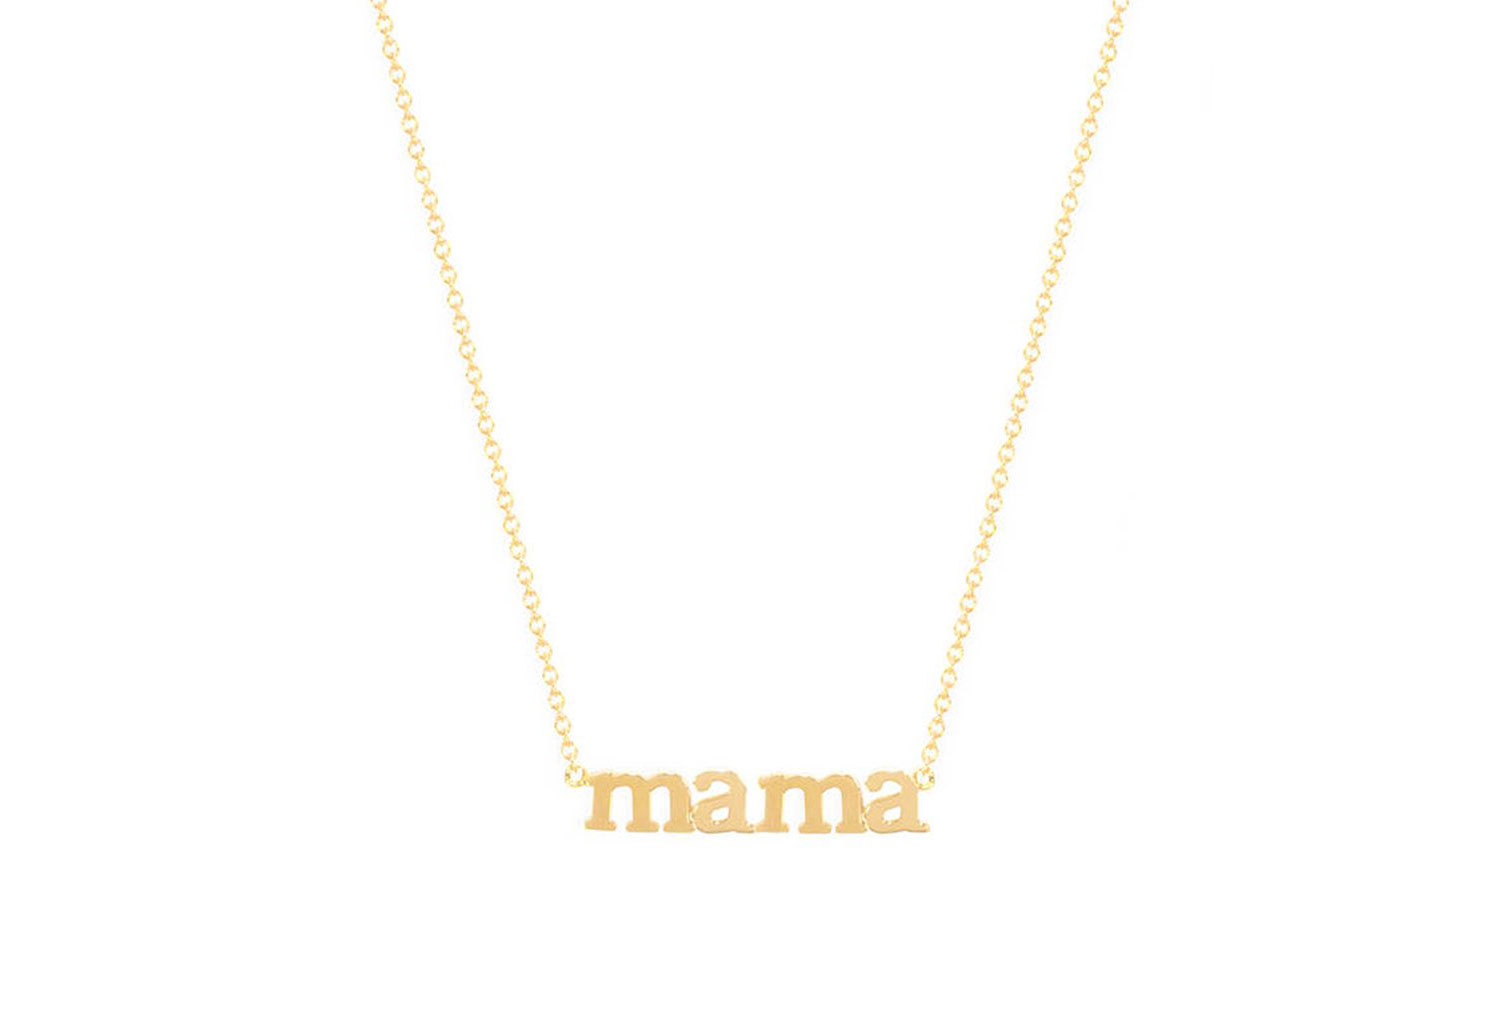 49 Great Mothers Day Gifts For Every Mom